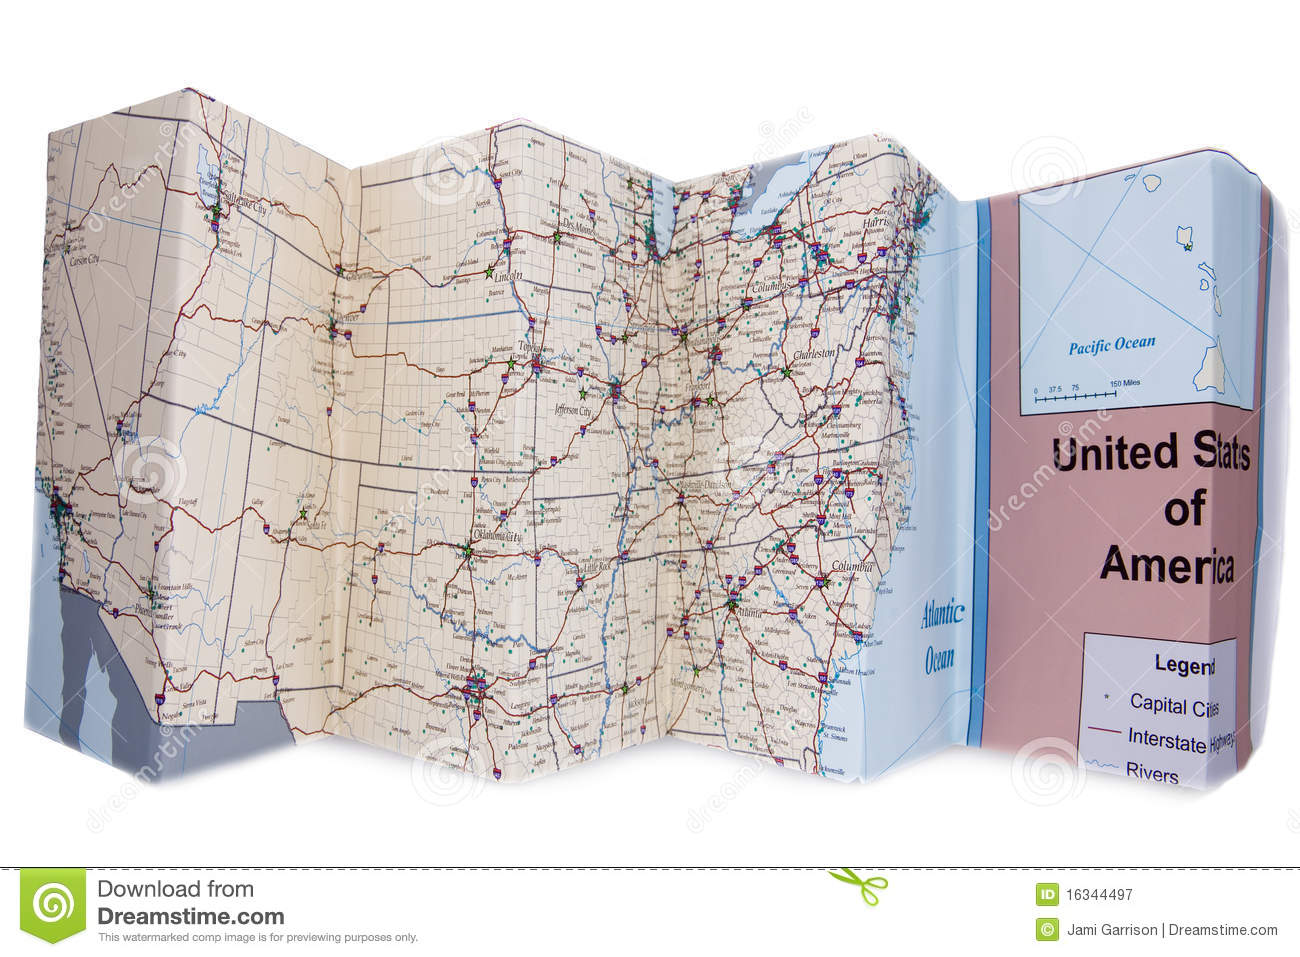 Folded road map clipart image royalty free stock Folded Map Royalty Free Stock Photography - Image: 16344497 image royalty free stock